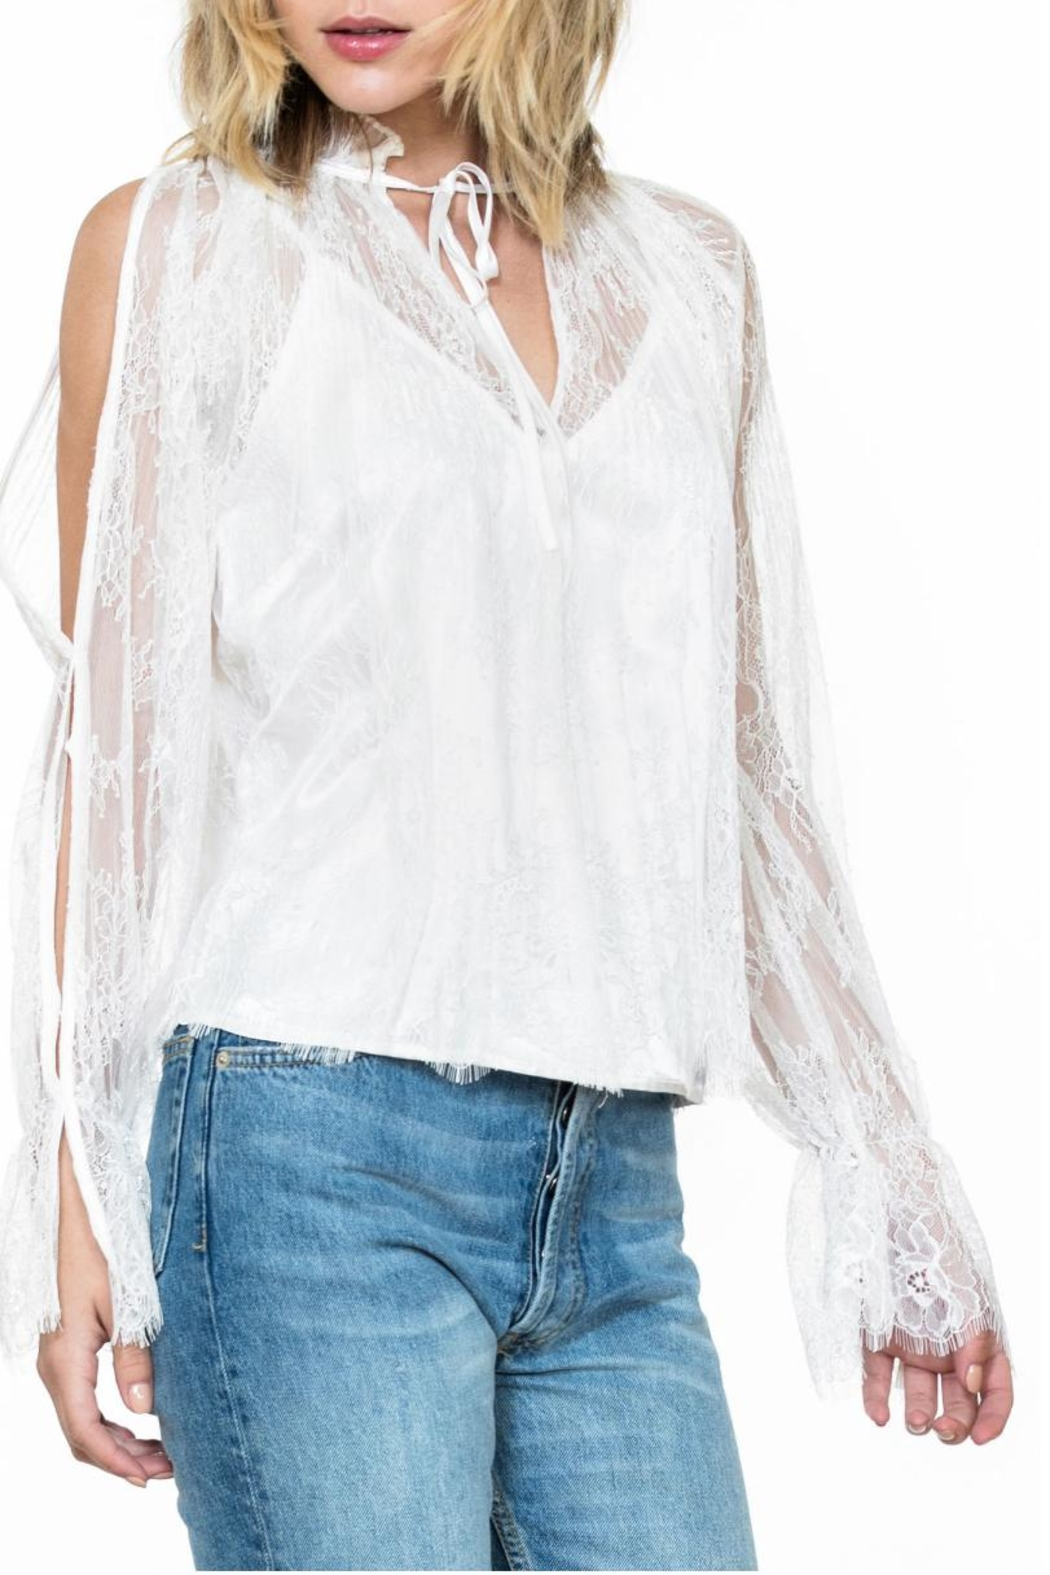 Ark & Co. Lace Top - Side Cropped Image